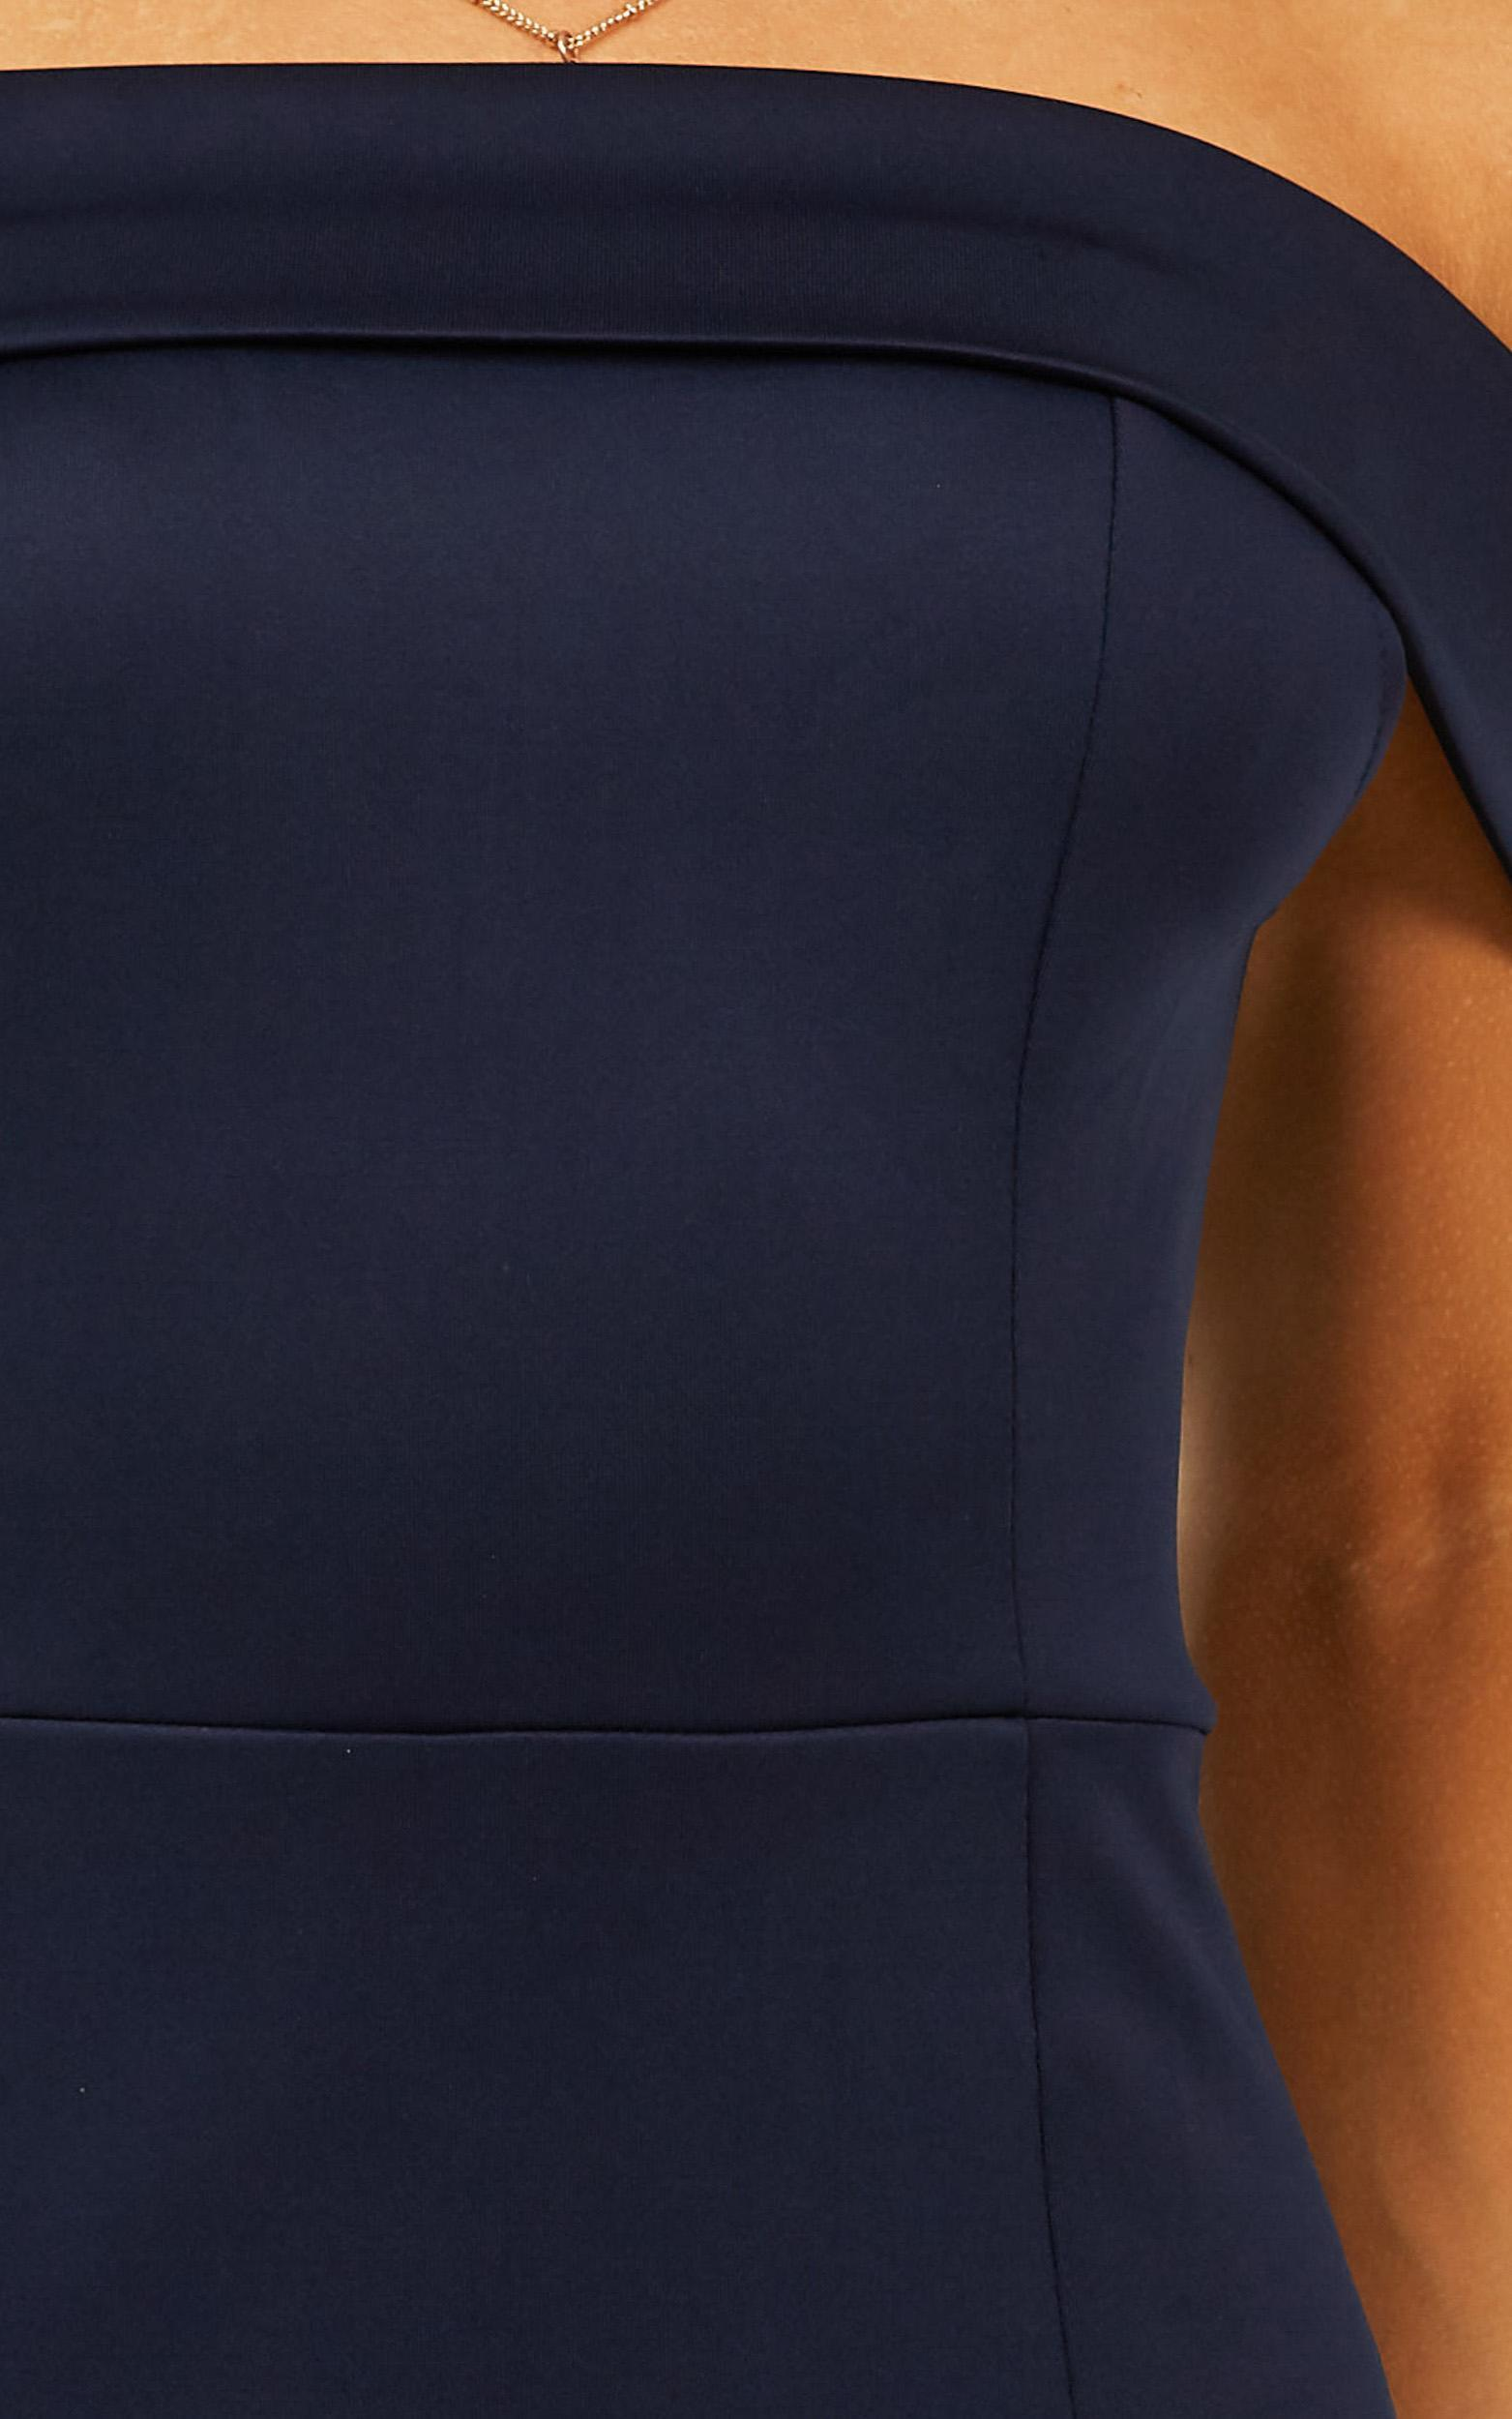 We Got This Feeling Dress in navy - 20 (XXXXL), Navy, hi-res image number null